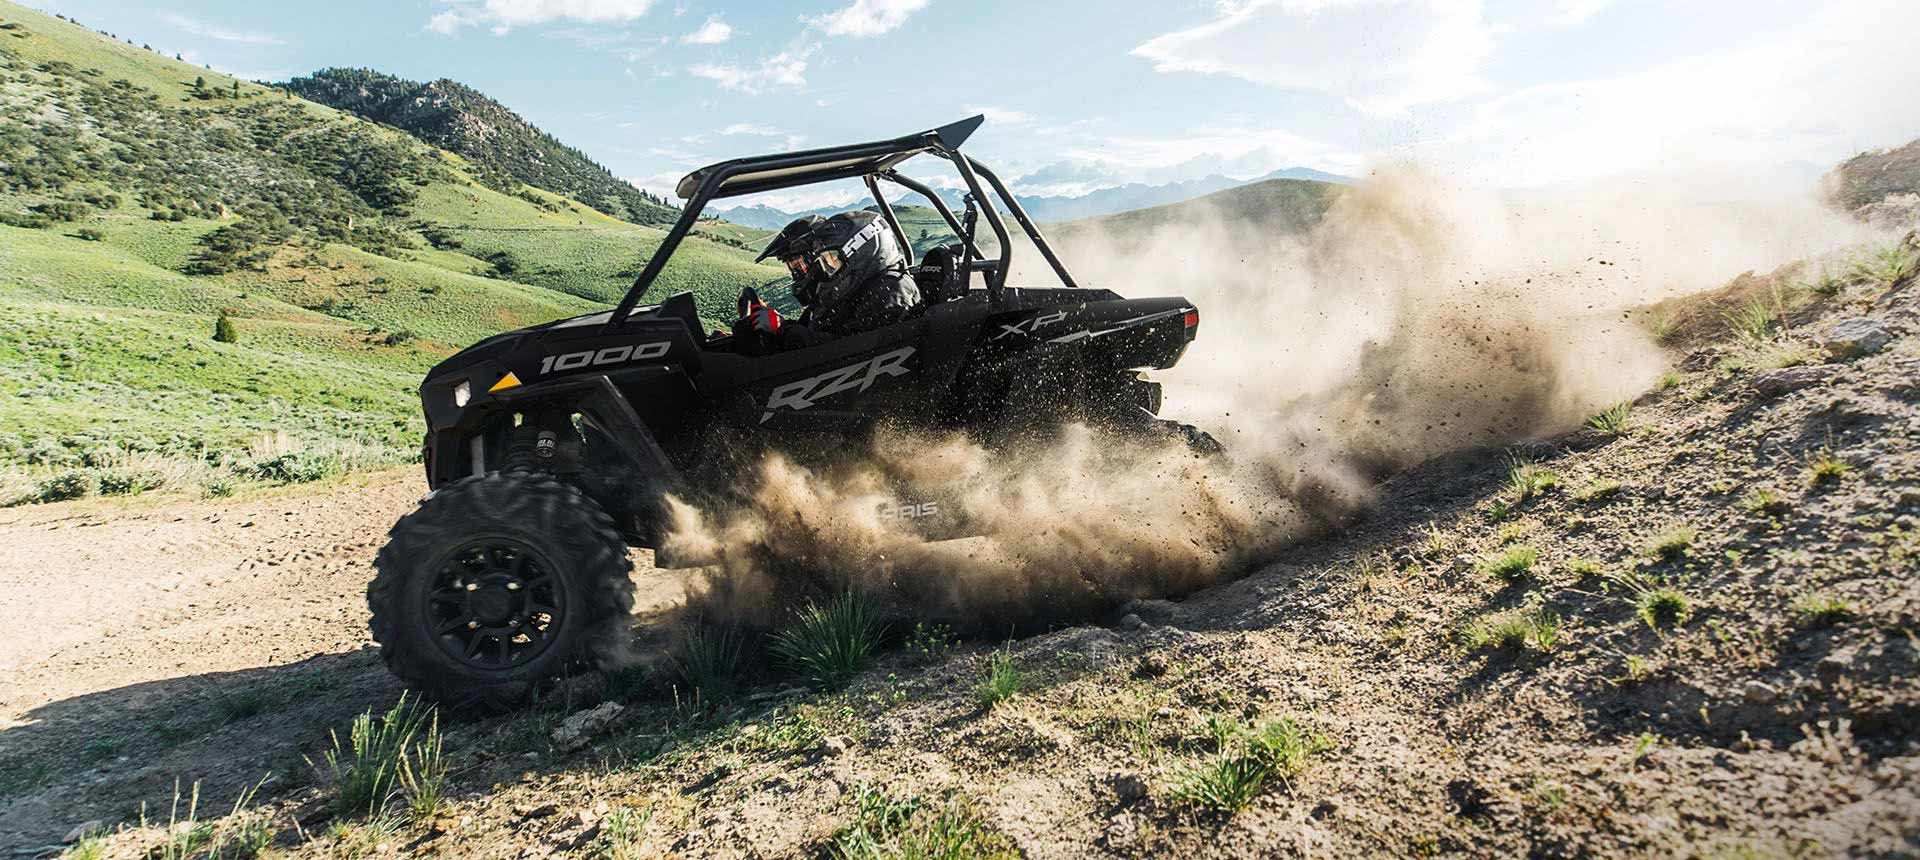 2022 Polaris RZR XP 1000 Sport available with two or four seats.